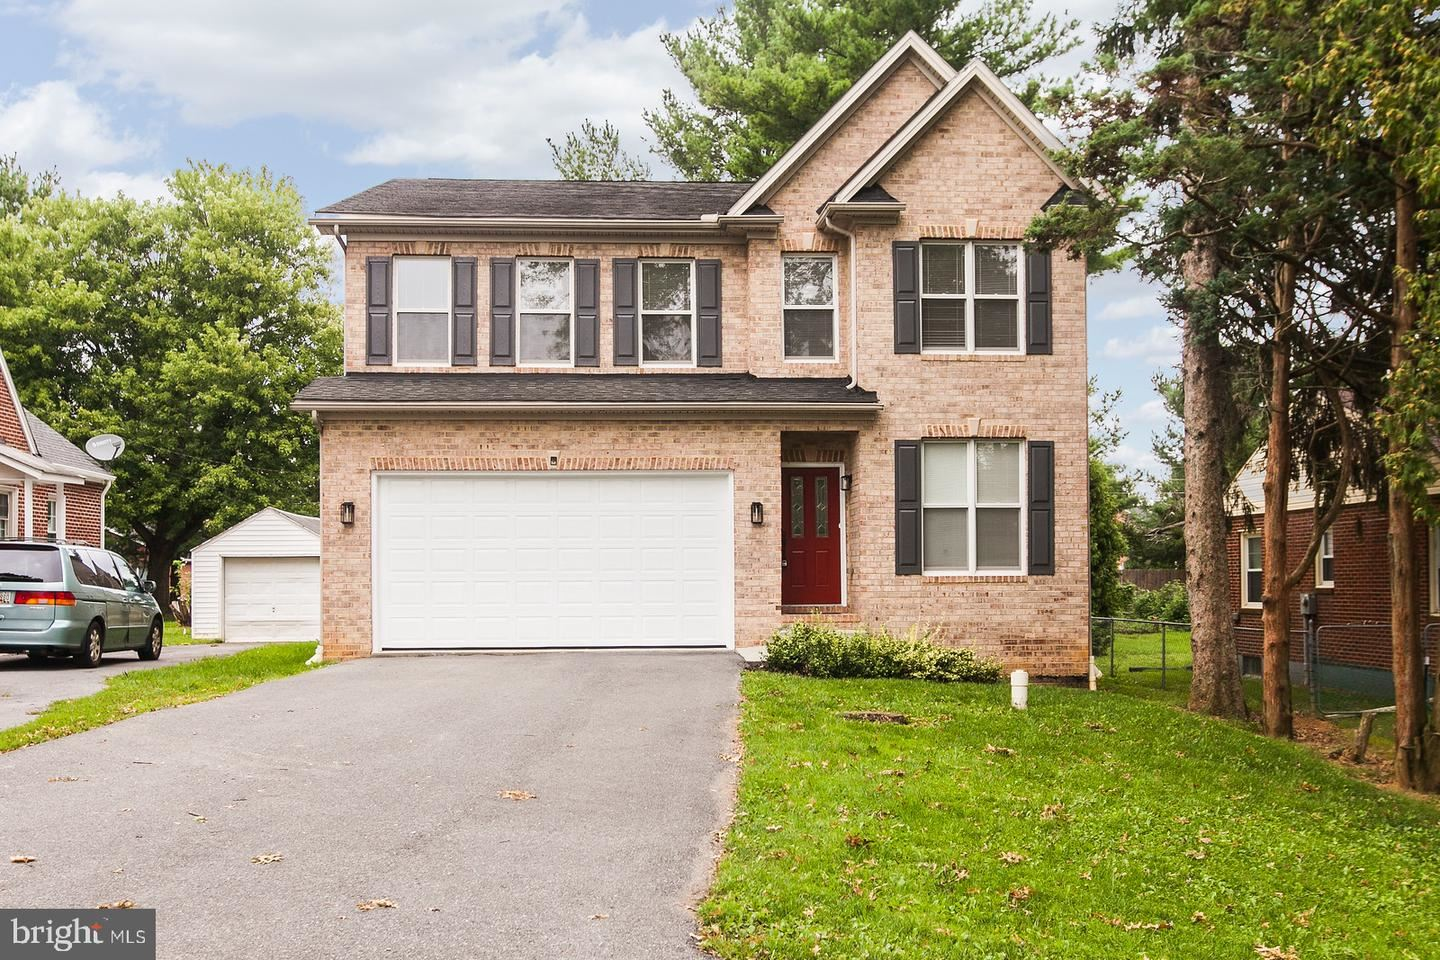 Photo of 1612 DUAL HWY, HAGERSTOWN, MD 21740 (MLS # MDWA174668)